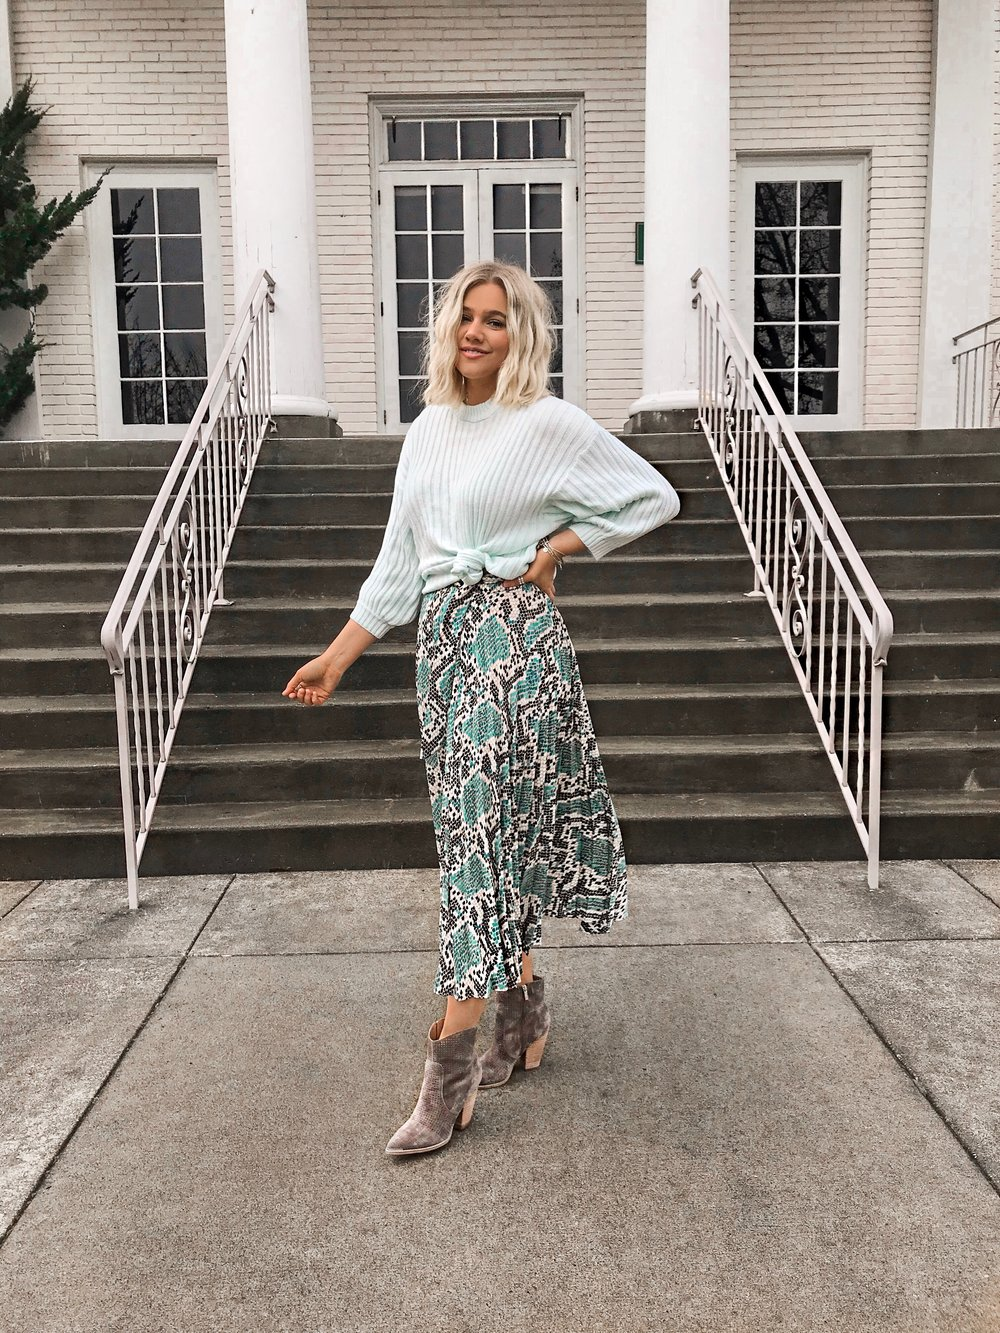 8712f2a43c1 Bre Sheppard   Spring Style   Nordstrom   Topshop   Outfit Inspo.JPG